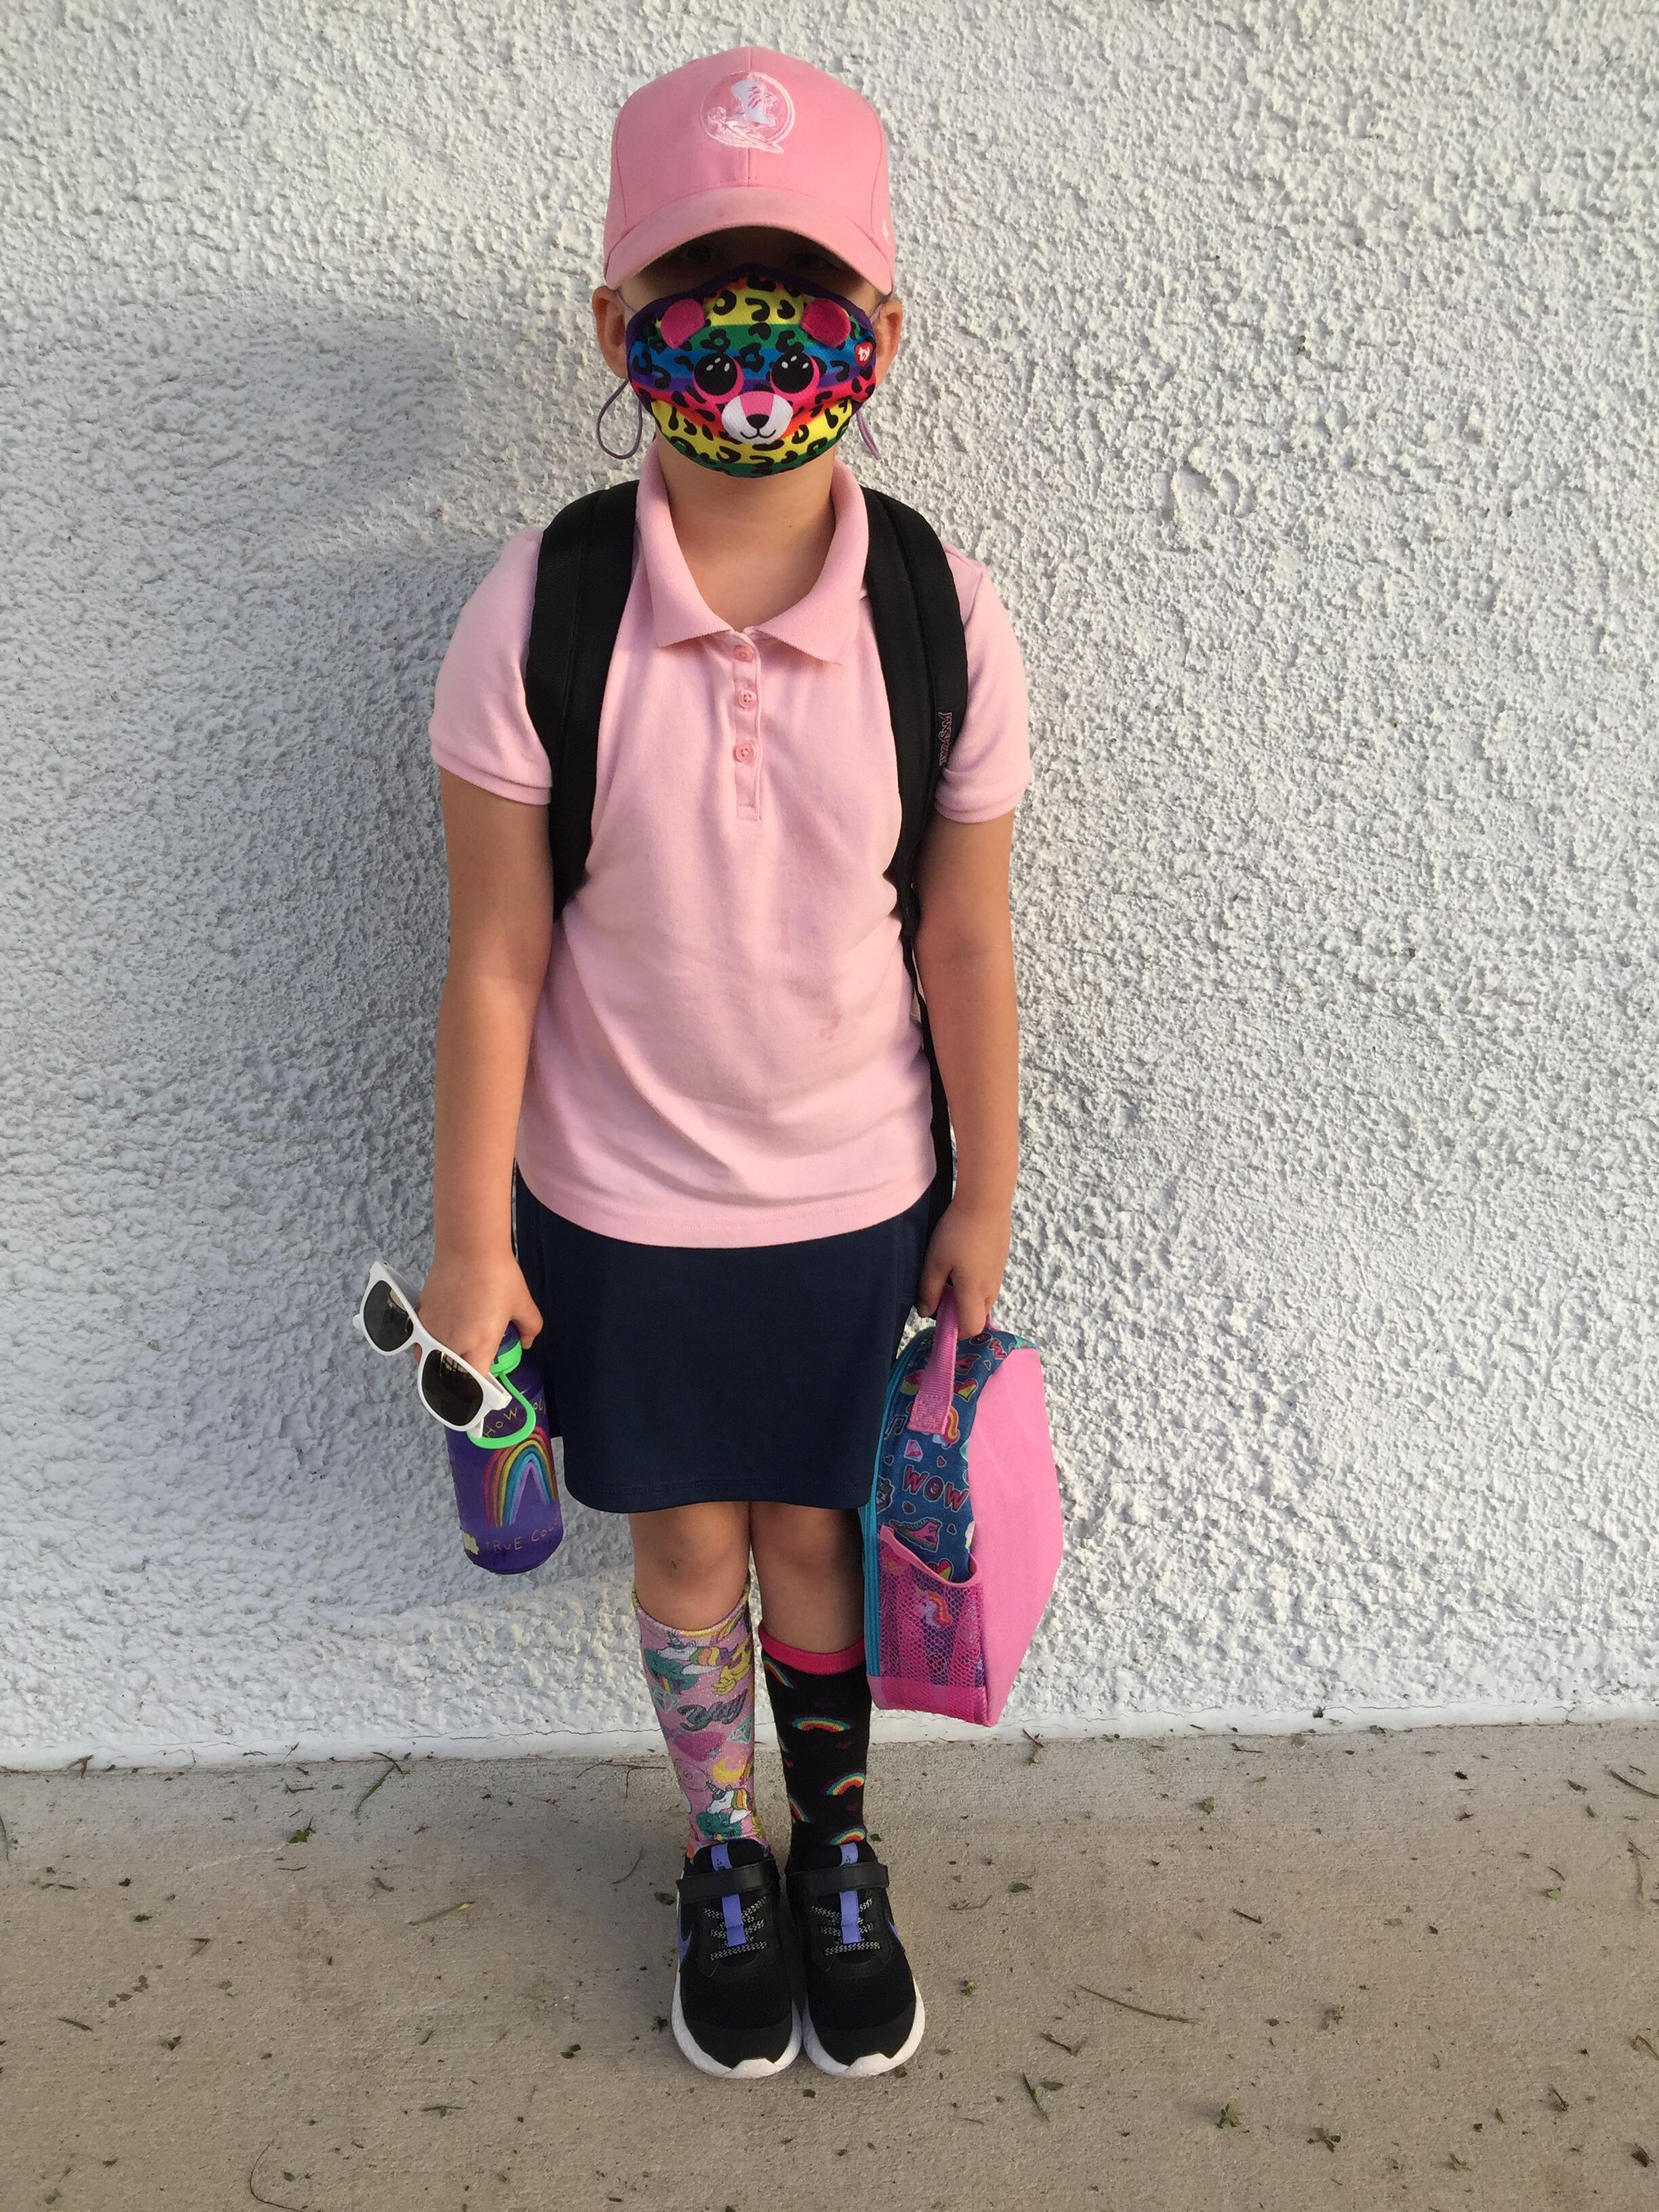 student wearing crazy hat and socks